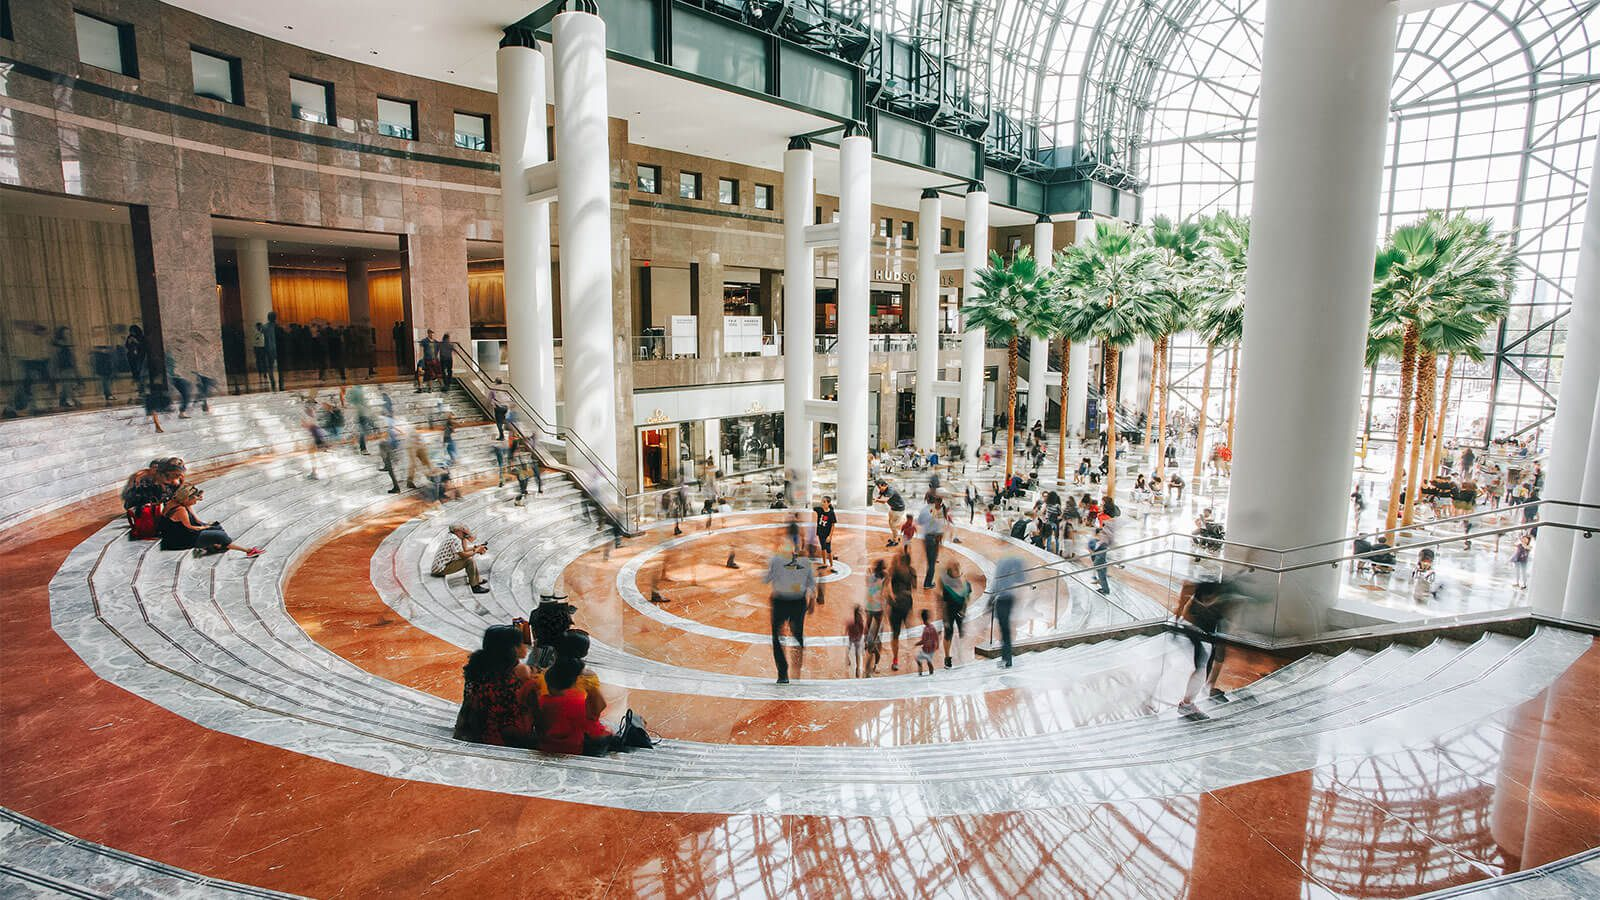 Winter Garden stairs with shoppers walking through